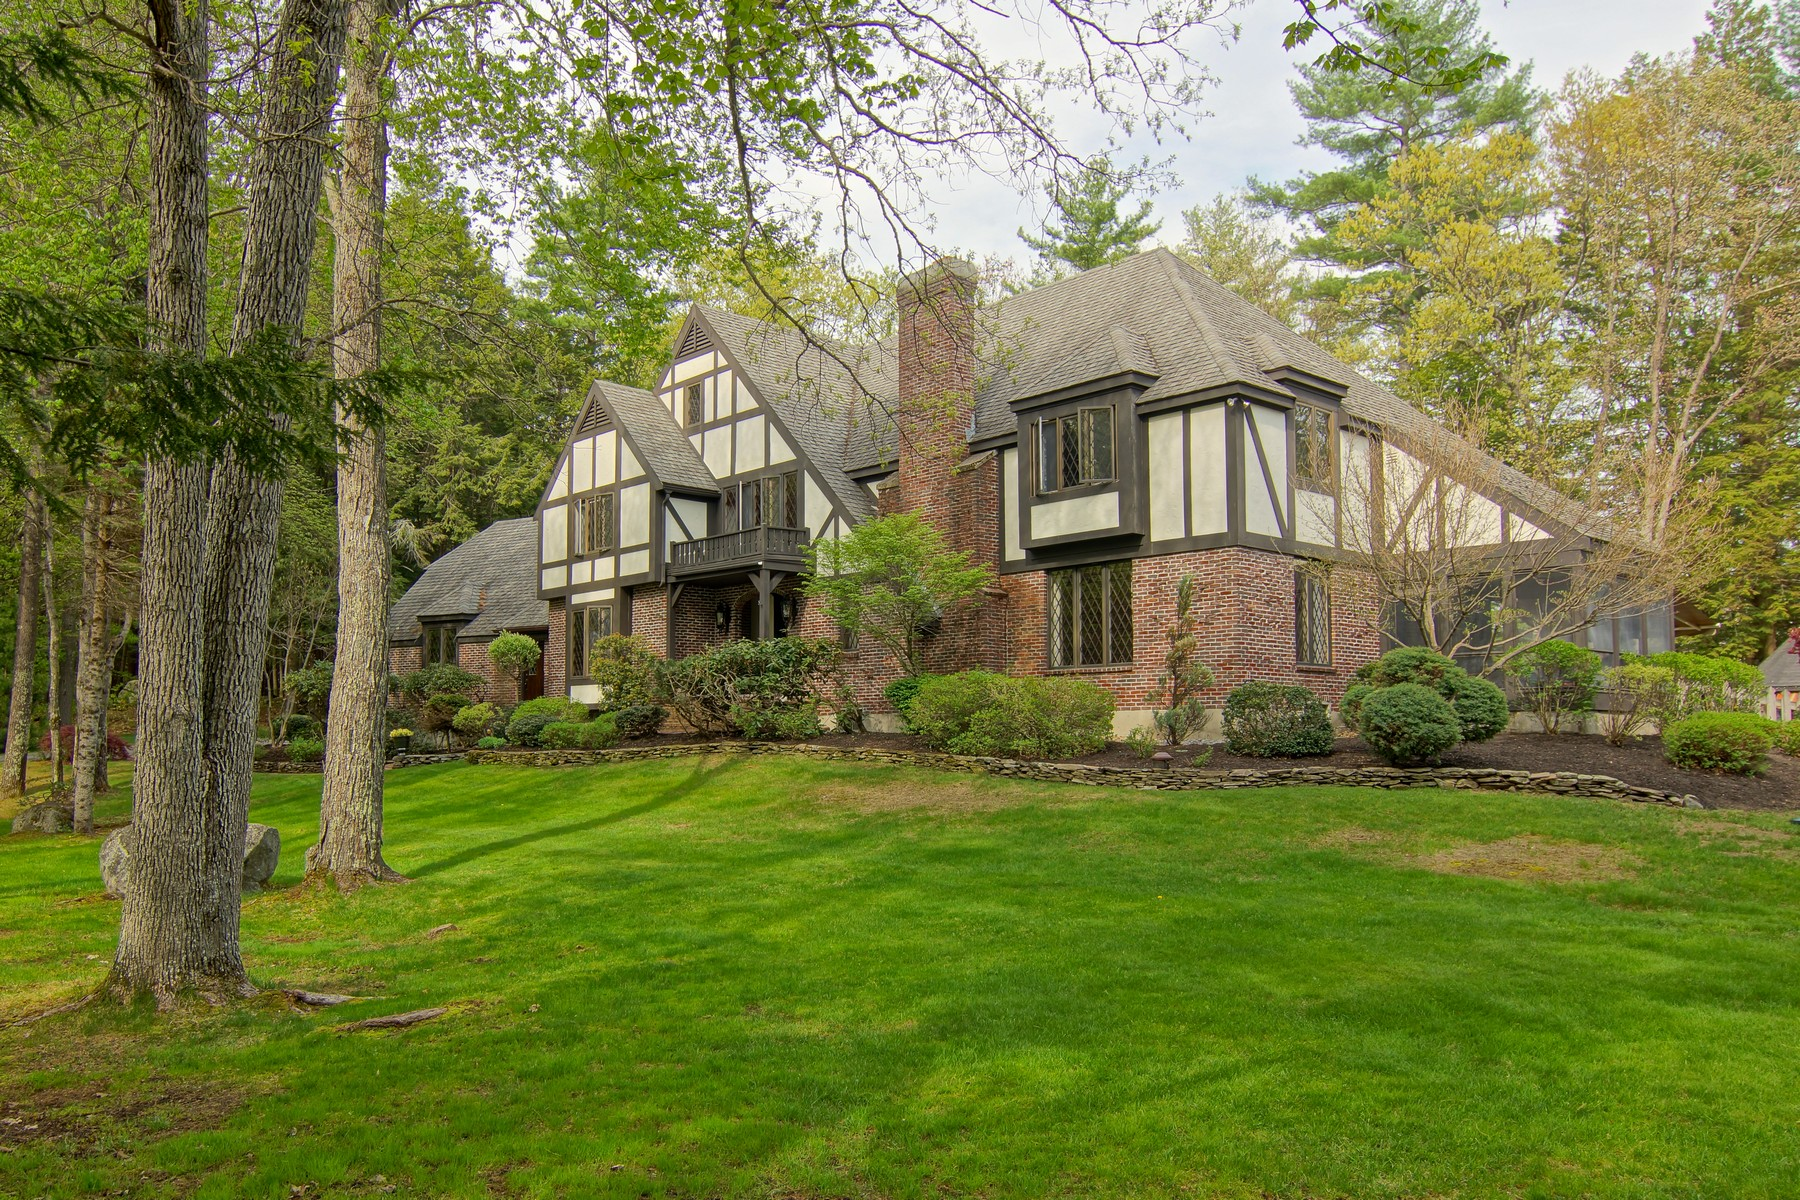 Single Family Home for Sale at Private Setting in a Desirable Exeter Neighborhood 14 Runawit Road Exeter, New Hampshire, 03833 United States